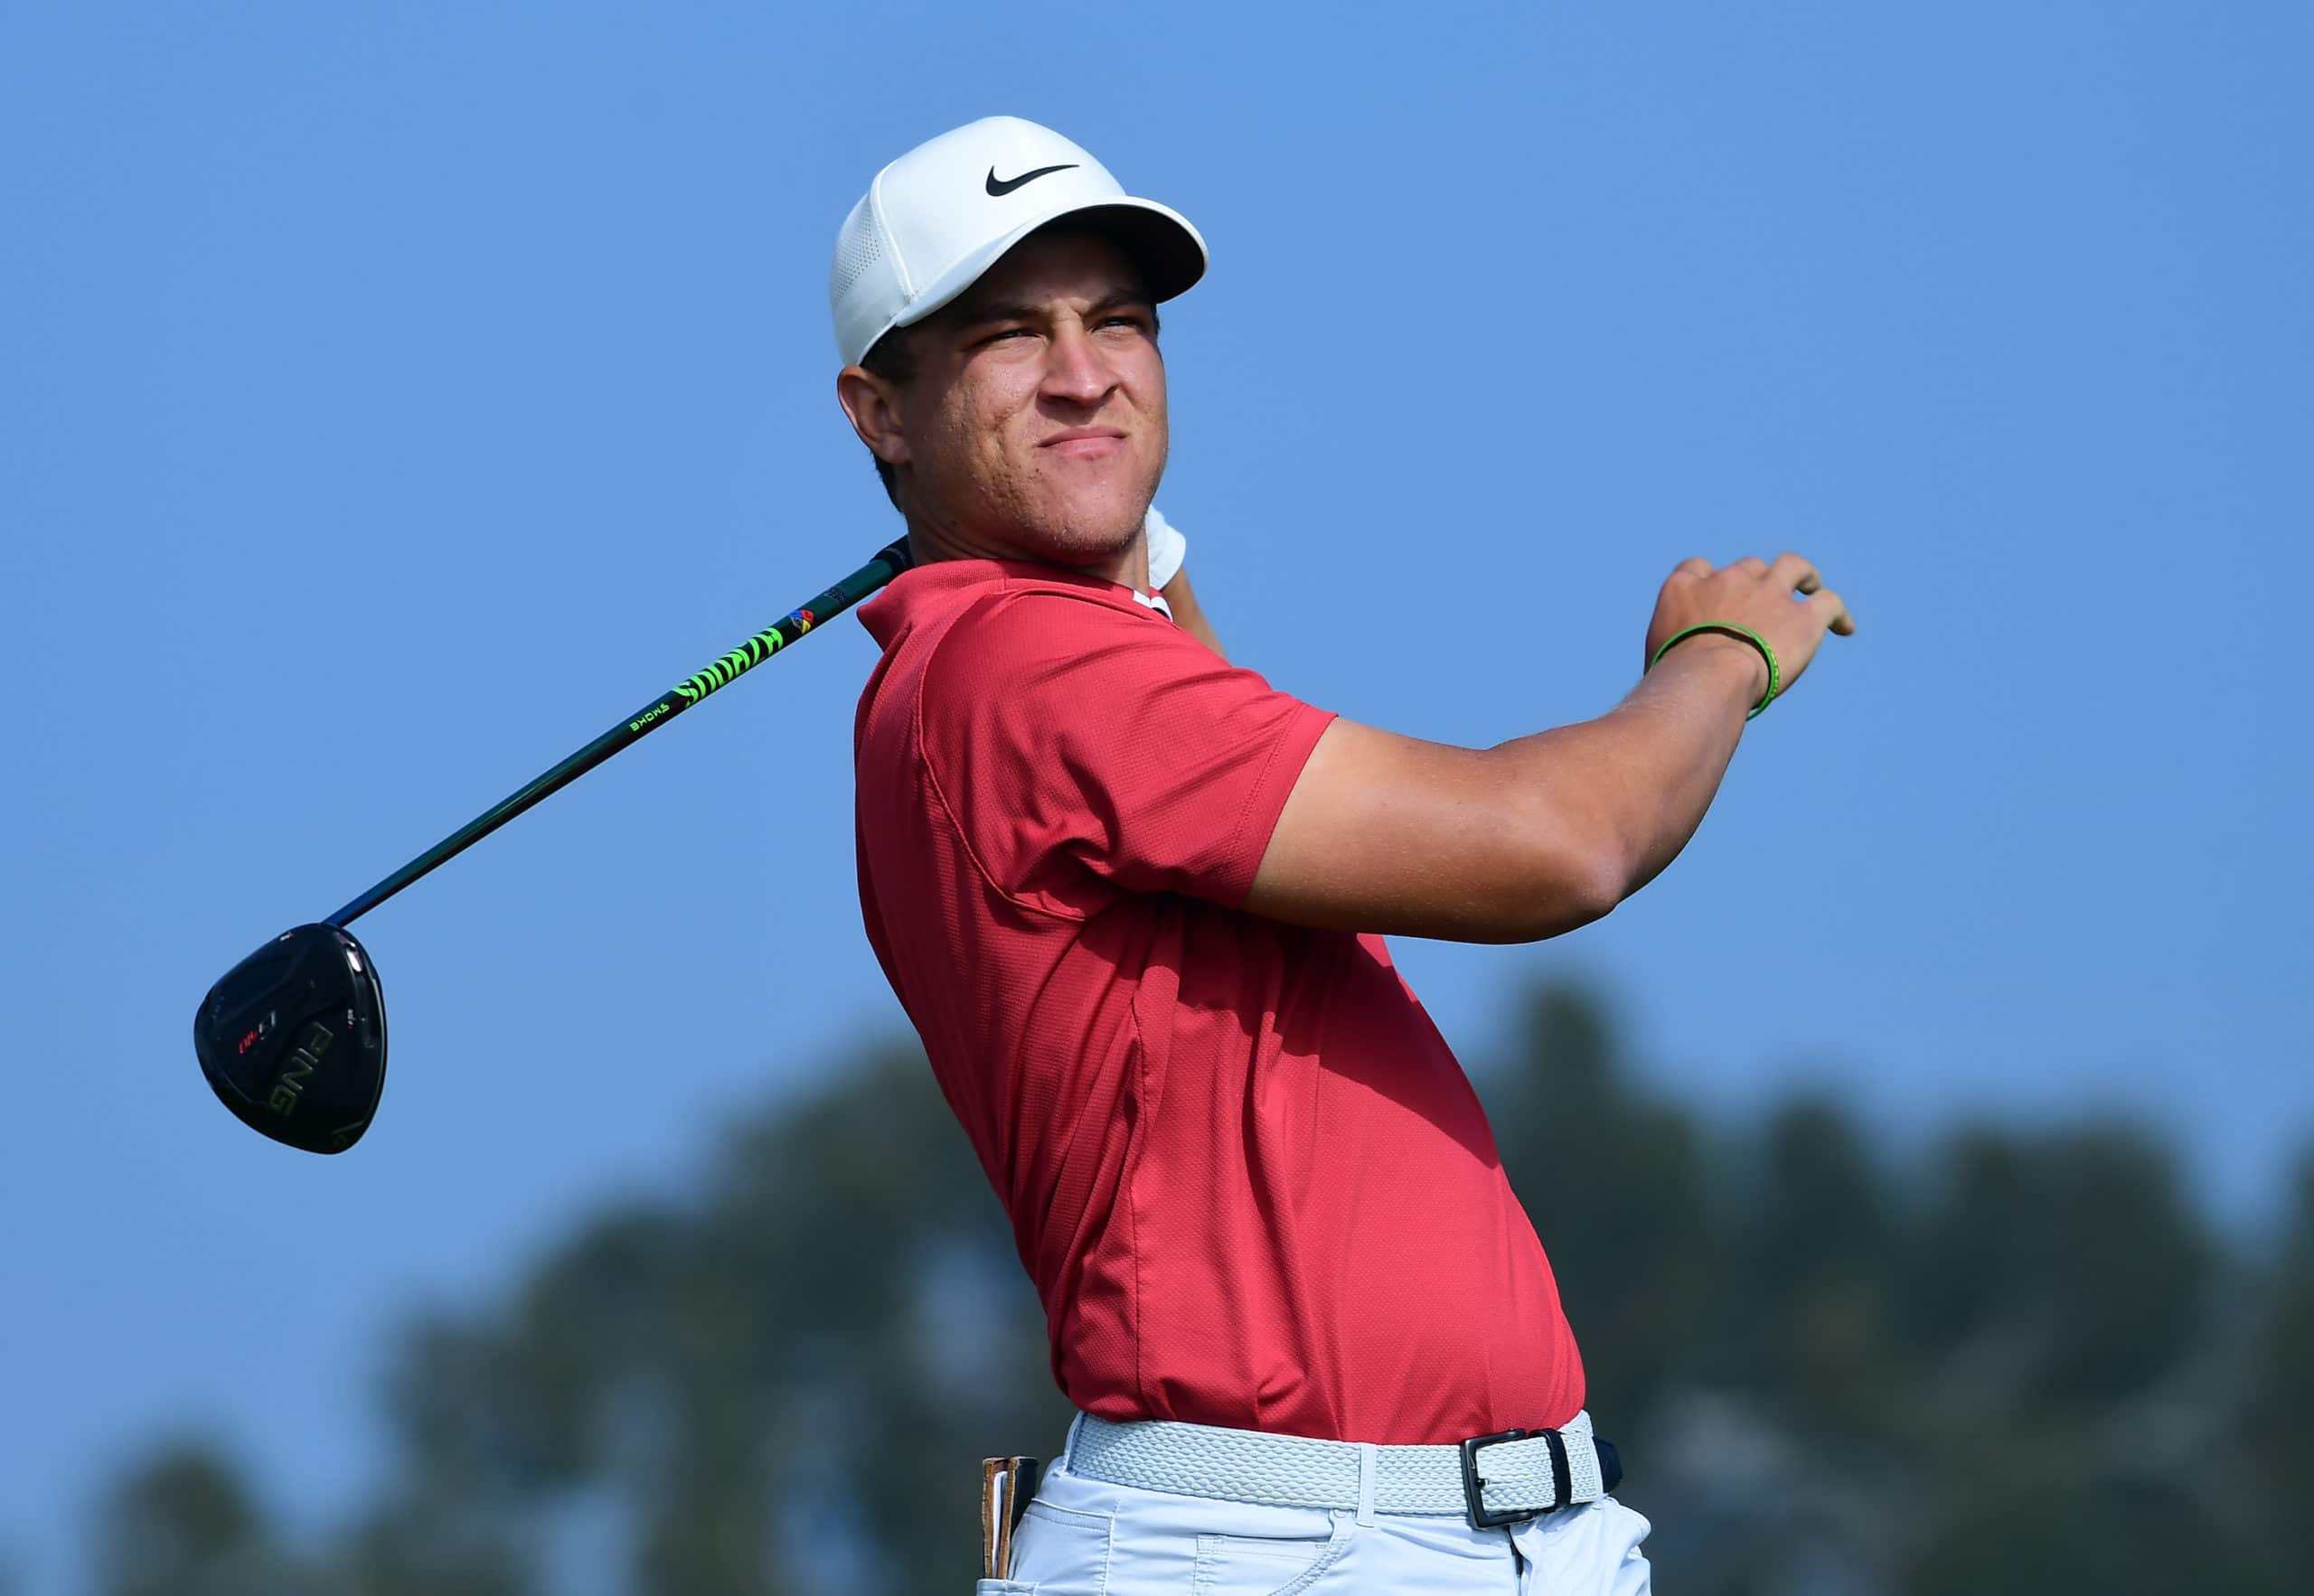 Total Drive Champion contender, Cameron Champ